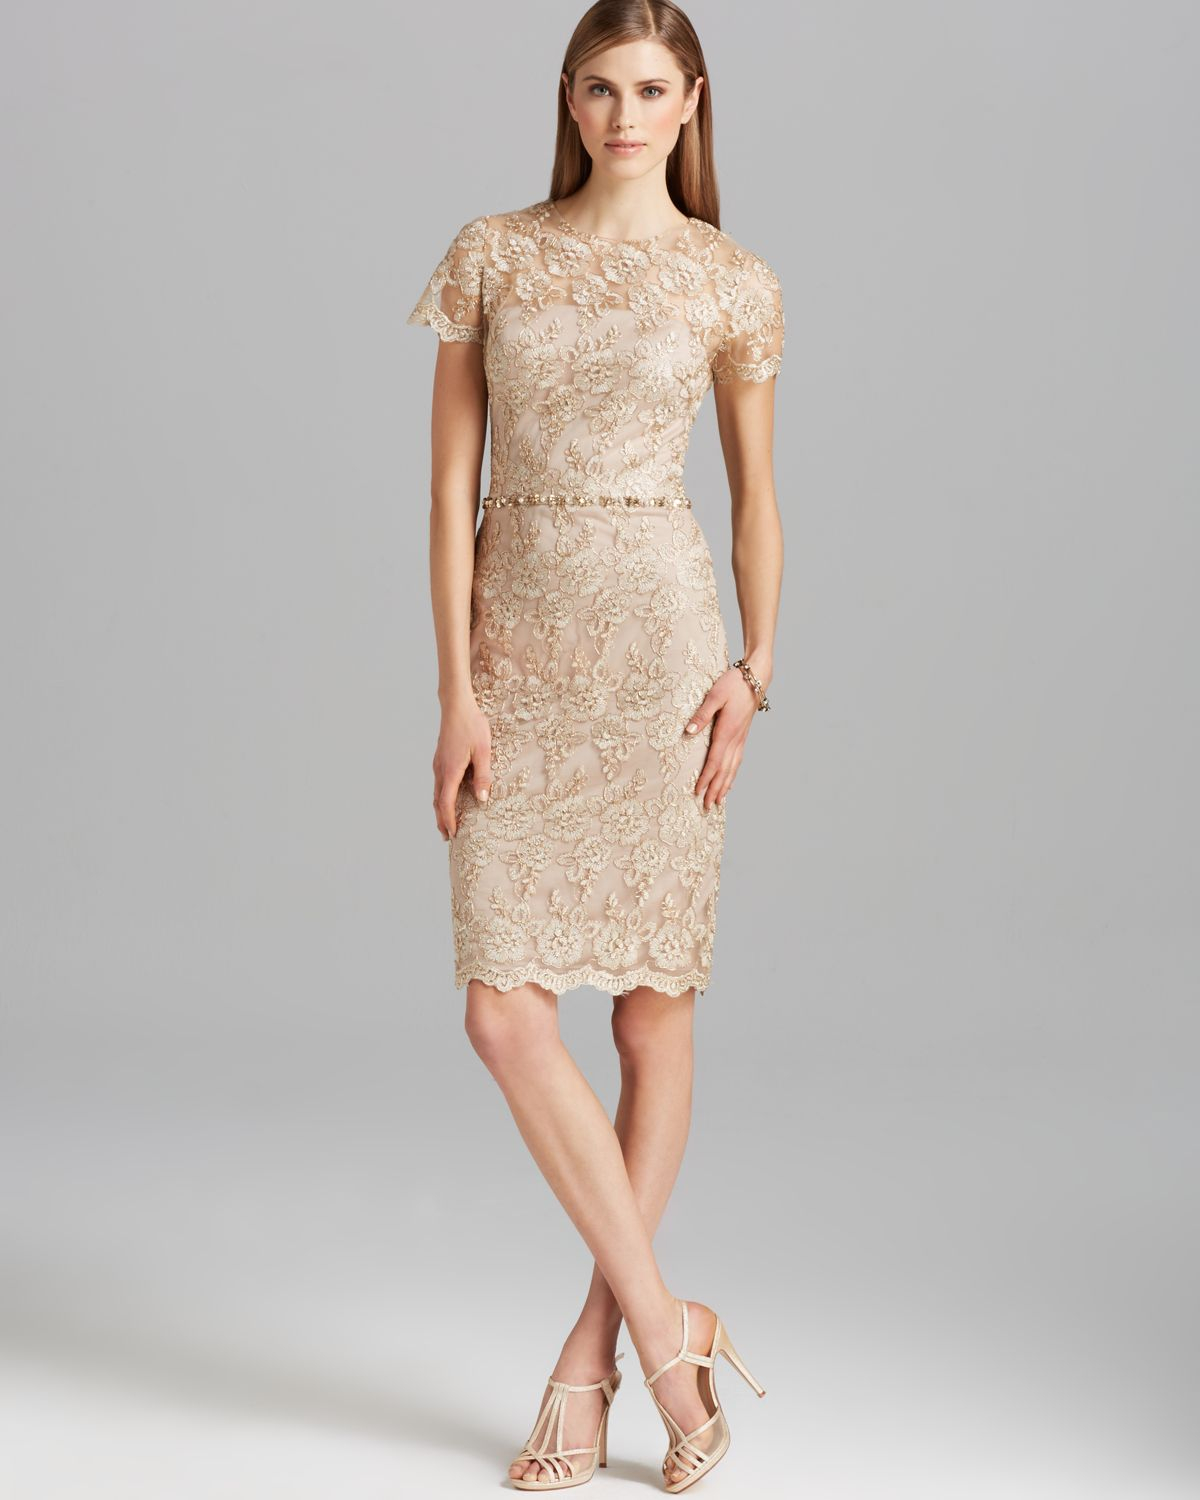 Lace Dresses With Sleeves: David Meister Dress Short Sleeve Metallic Lace